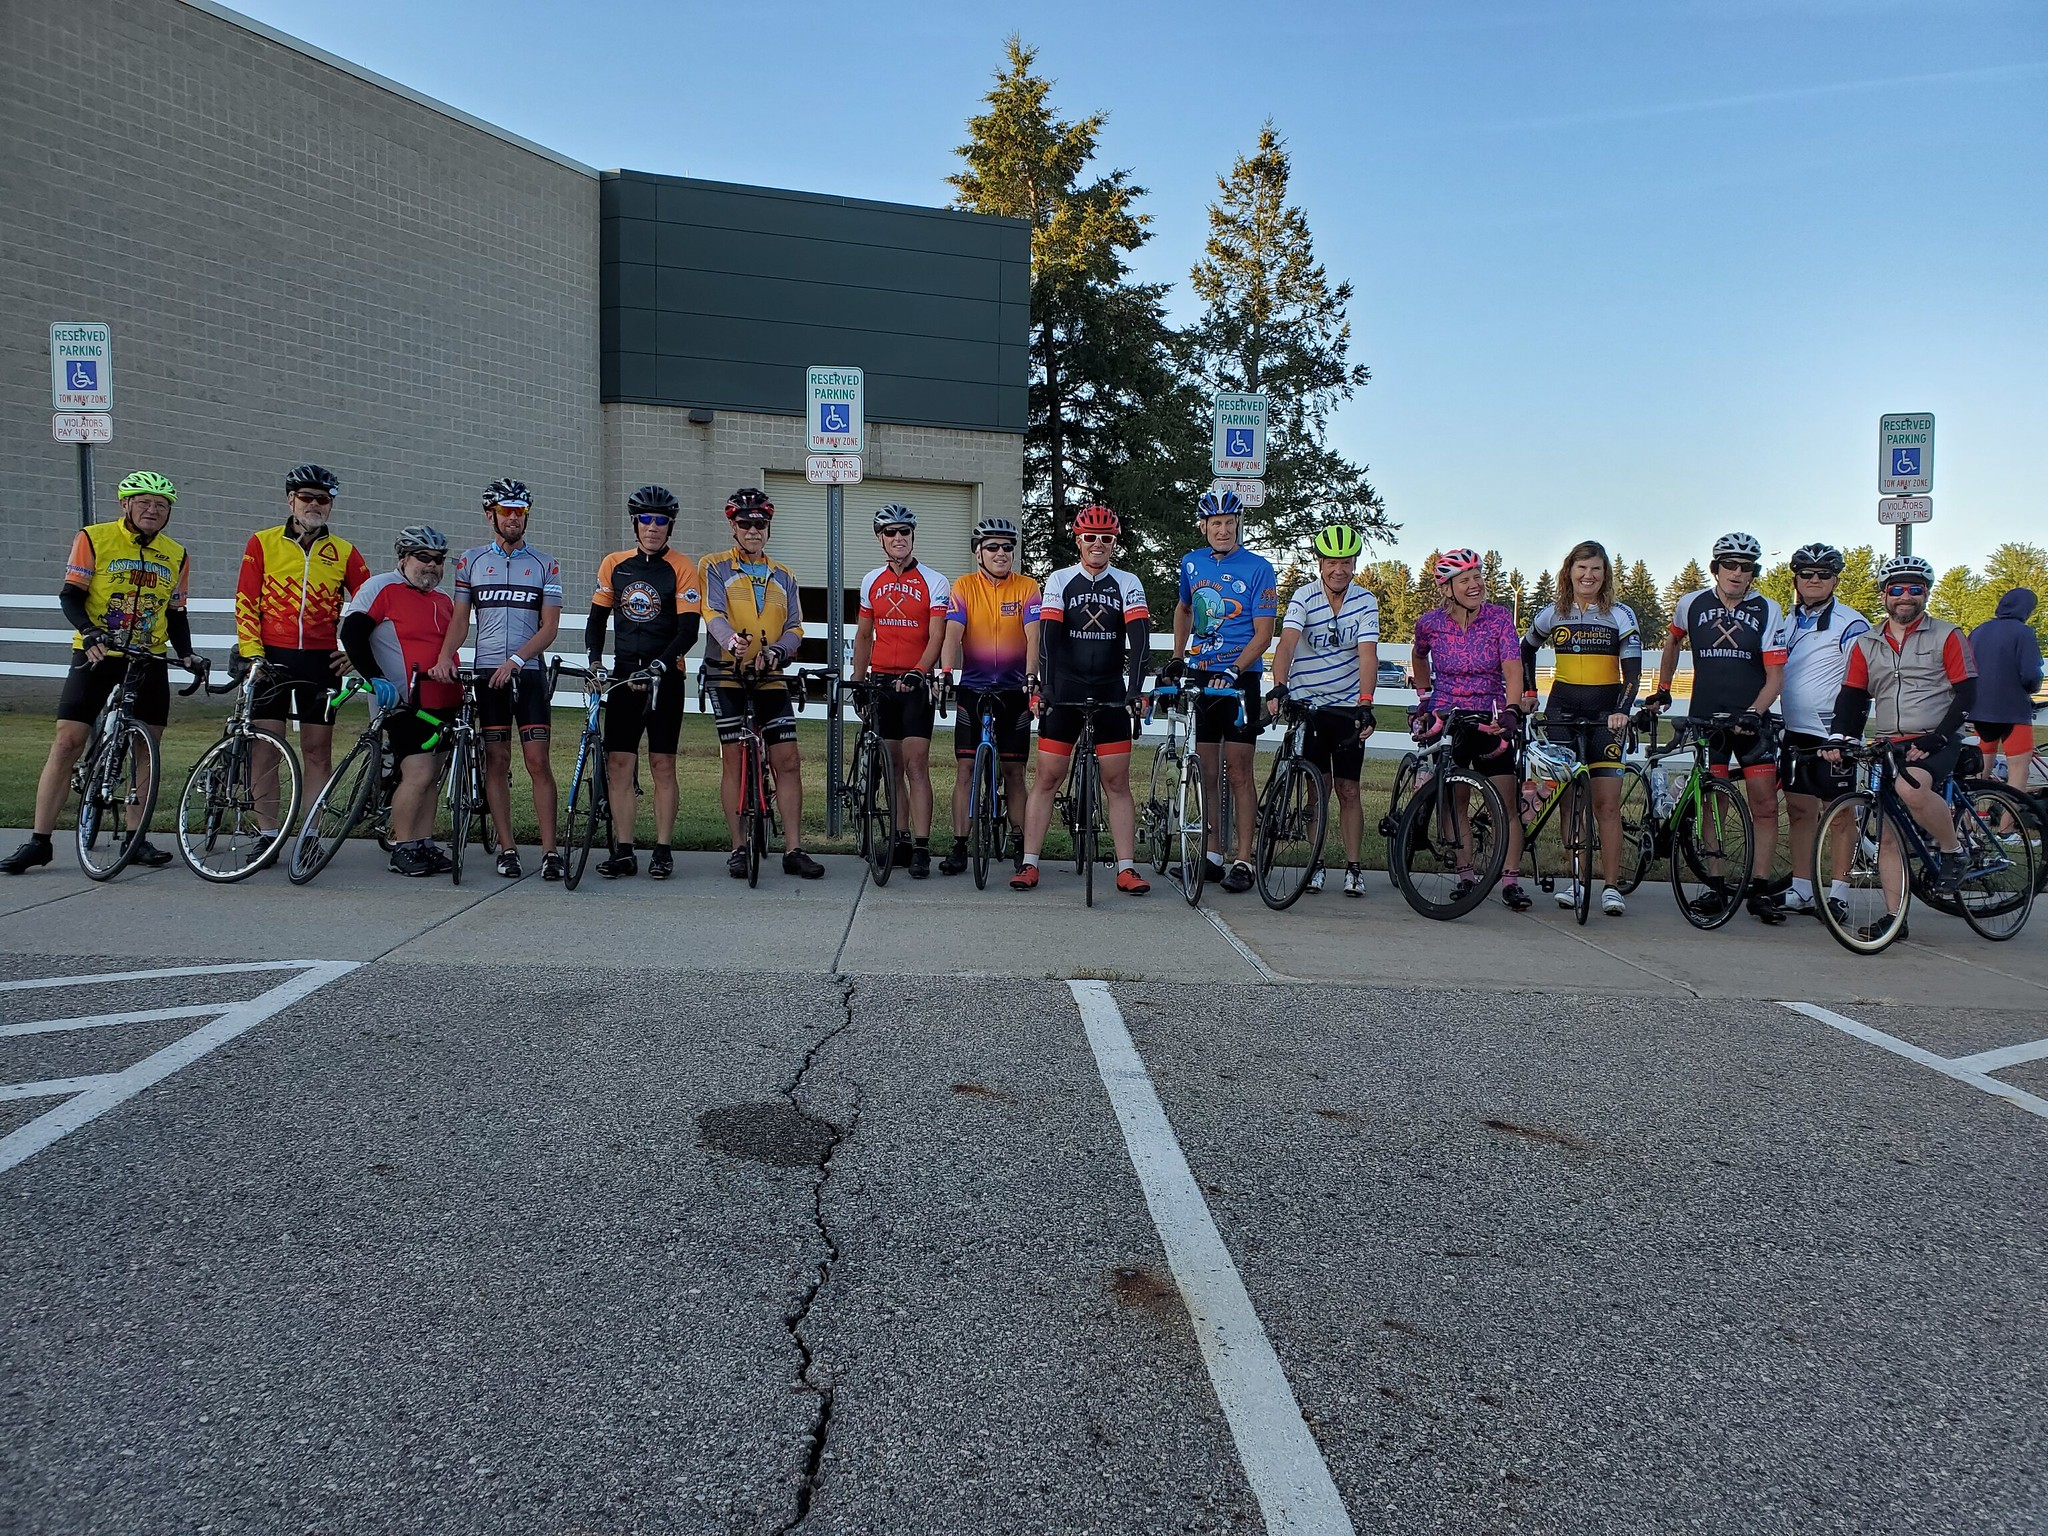 Bikers Cycle Their Way Into This Year's DALMAC Bike Ride Tour